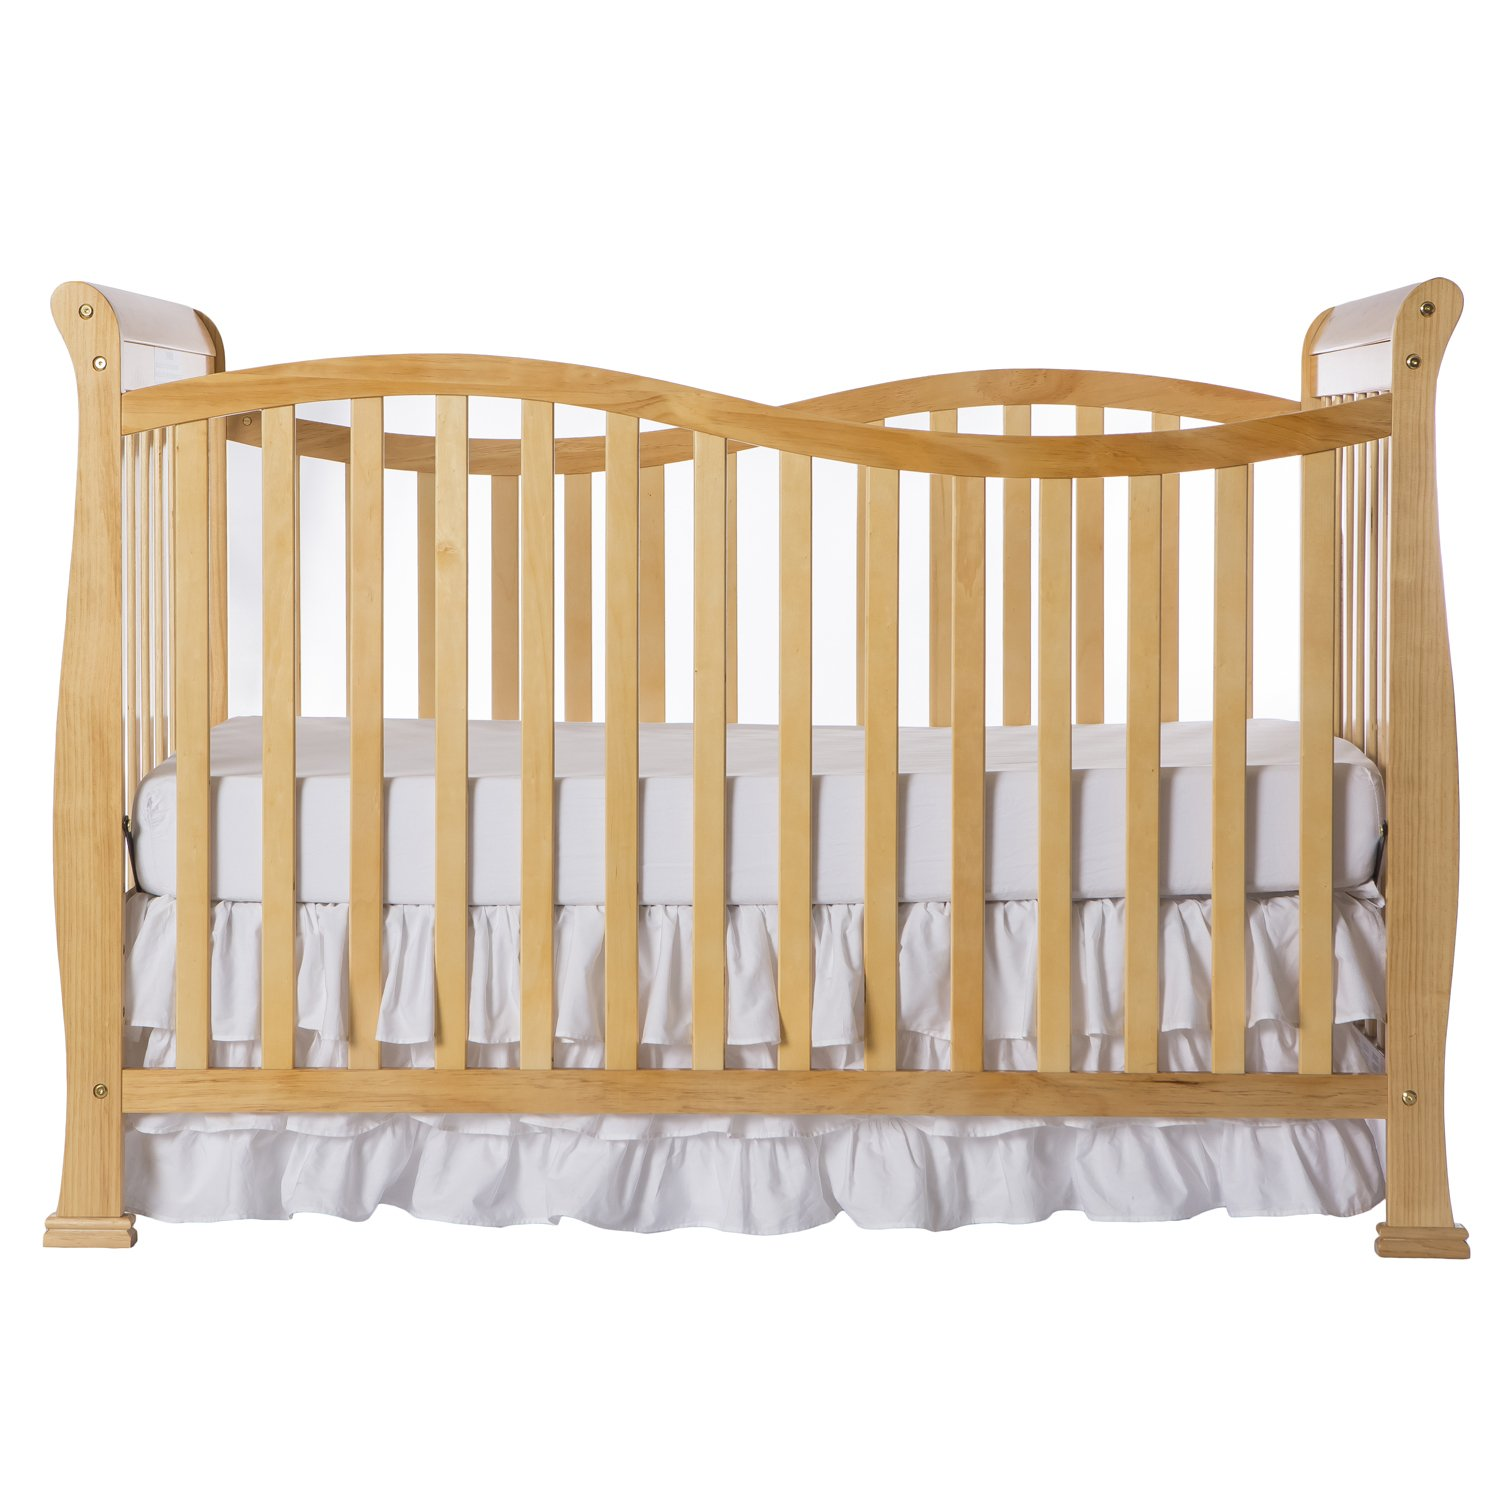 Dream On Me Violet 7 in 1 Convertible Life Style Crib, Natural by Dream On Me (Image #1)